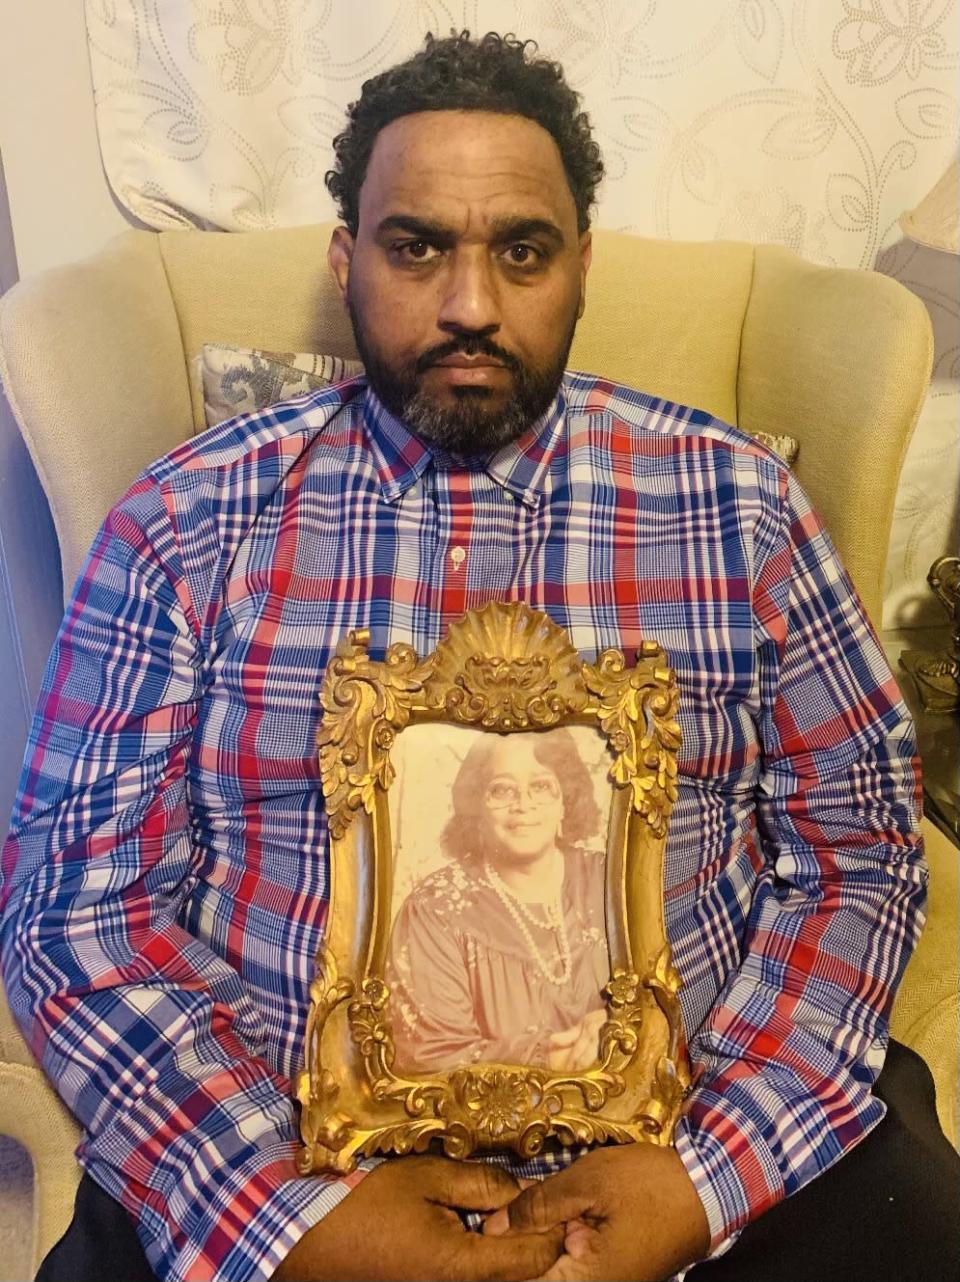 Christopher Pendergrass holds a photo of his beloved grandmother, Viola.